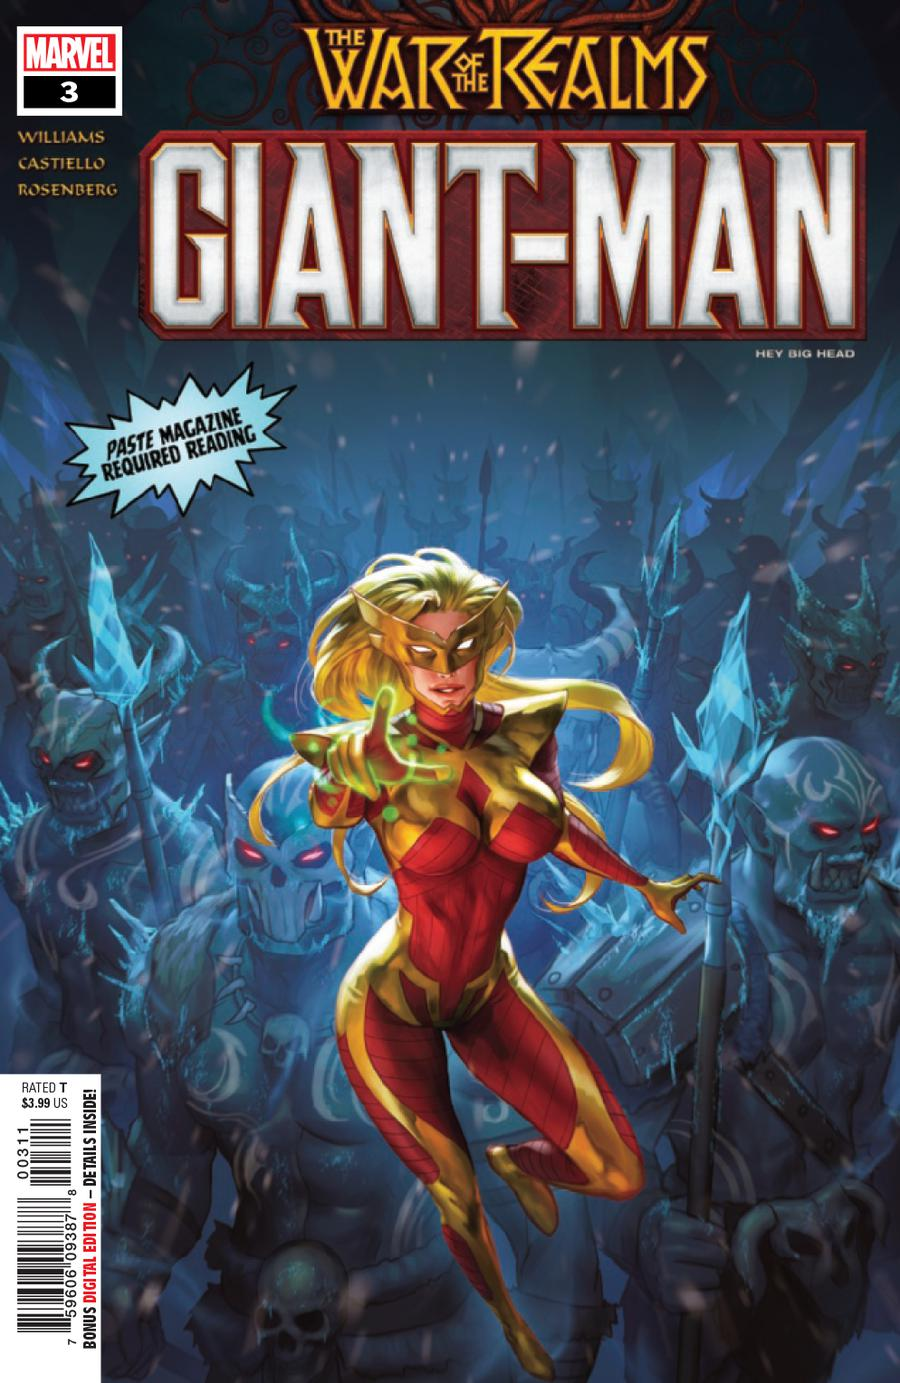 Giant-Man #3 (War Of The Realms Tie-In)